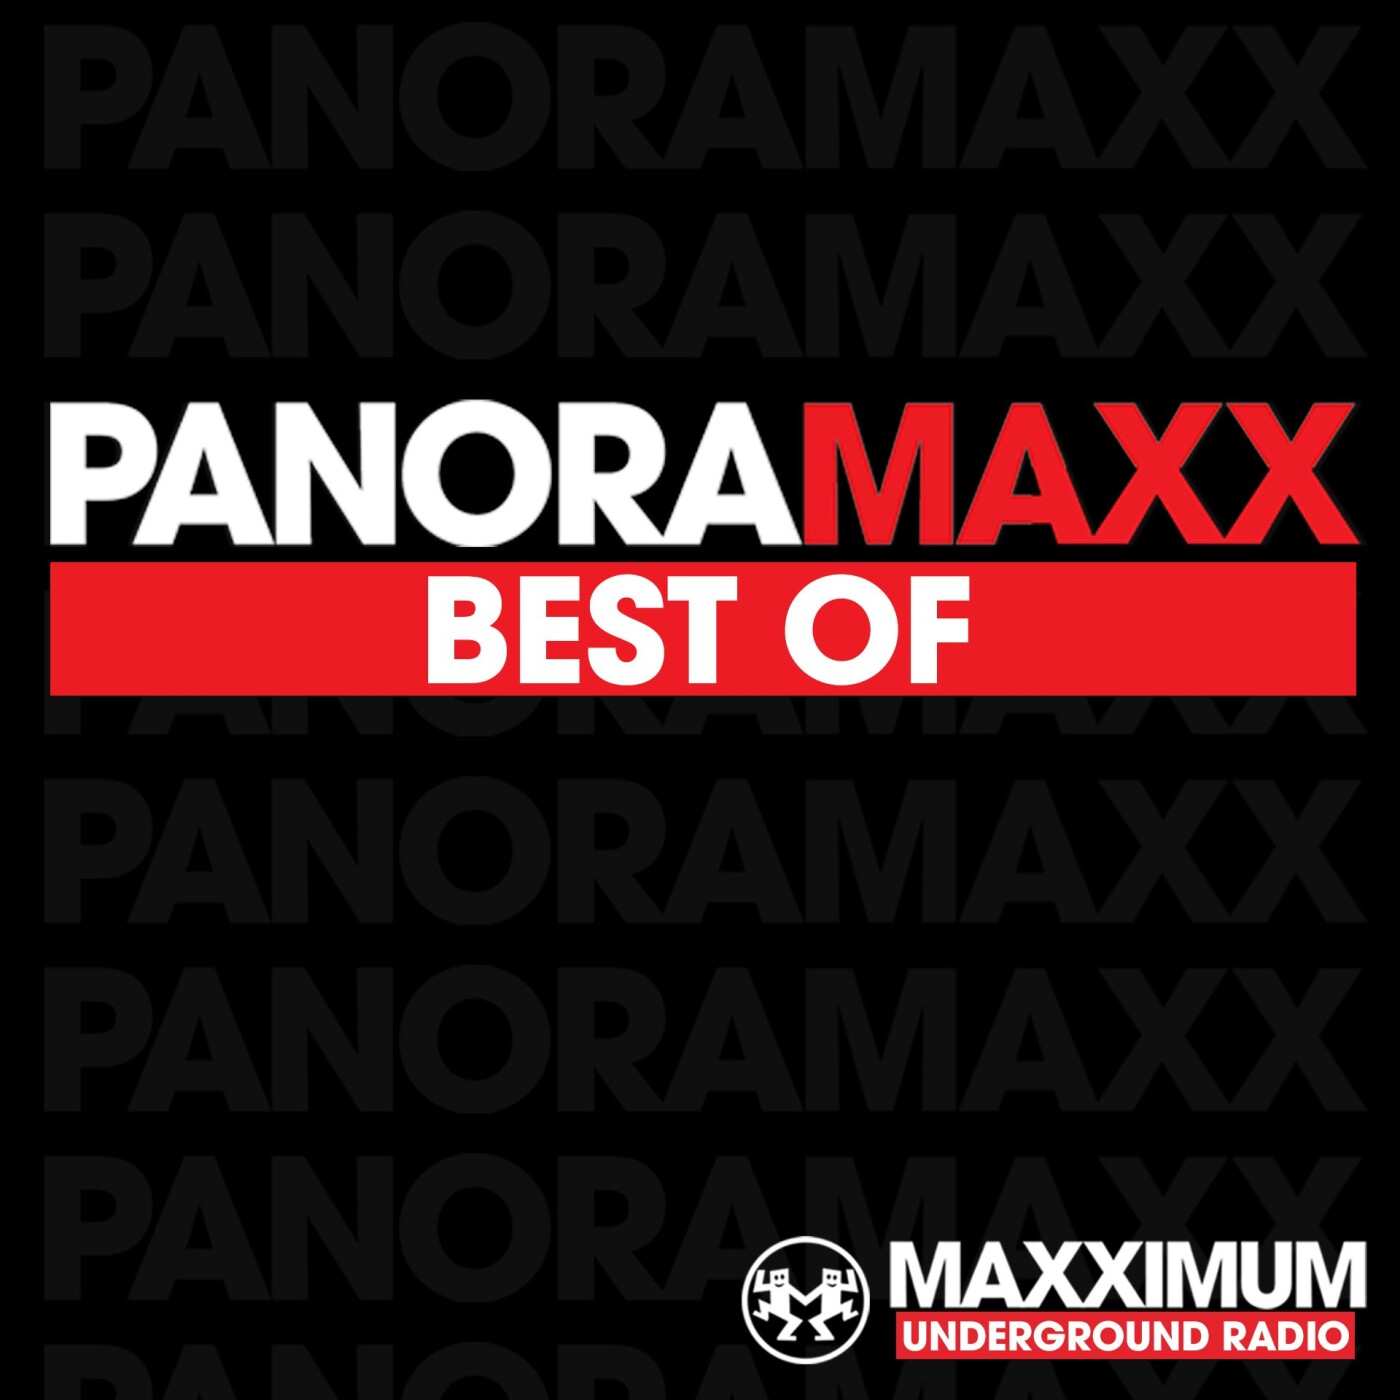 PANORAMAXX BEST OF : DOUBLE TROUBLE